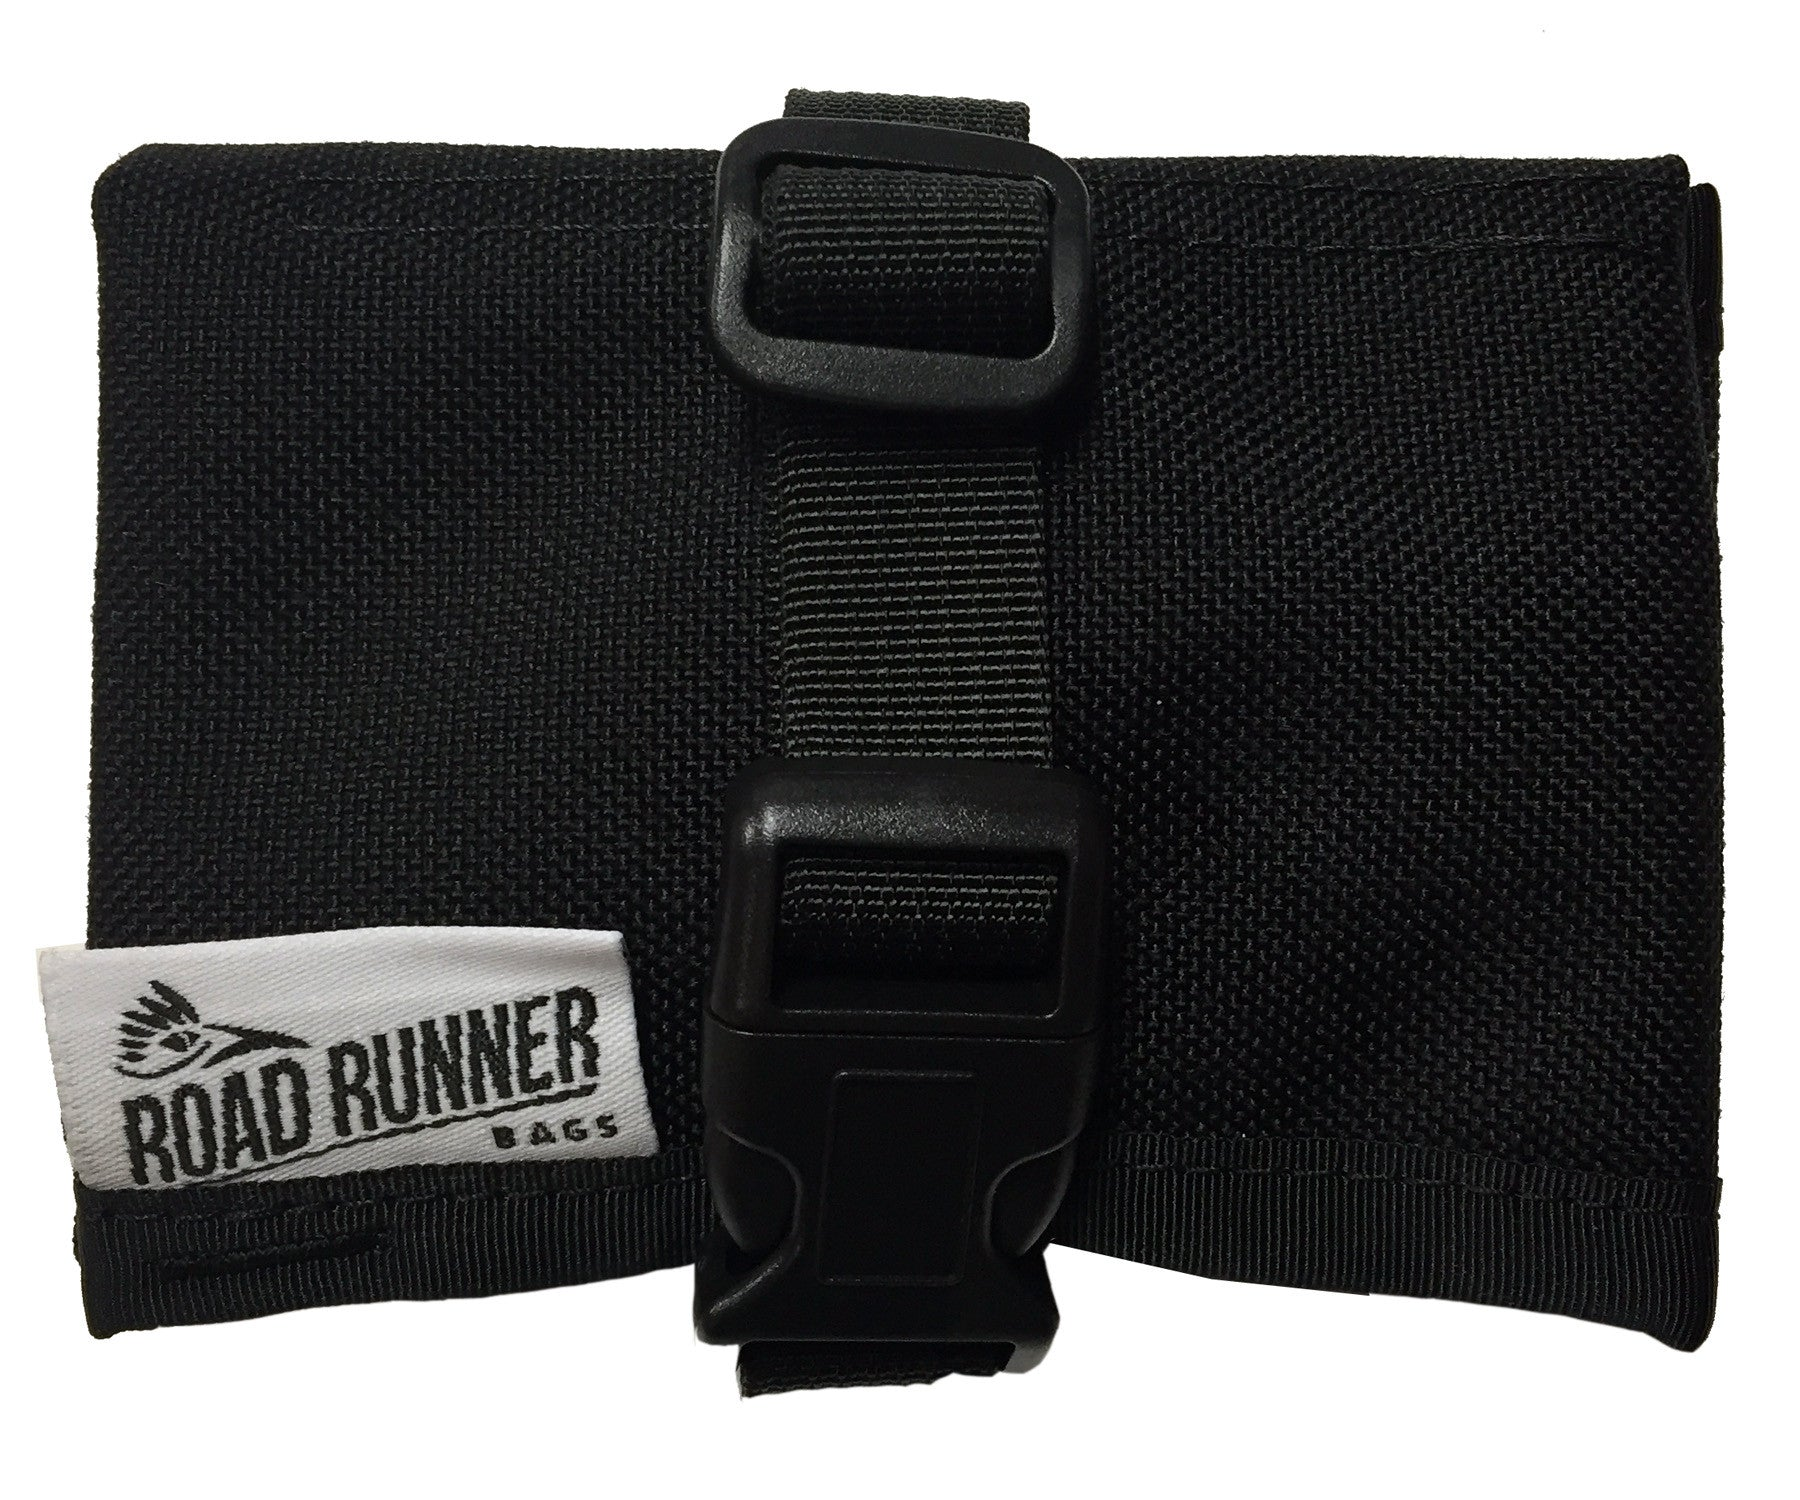 Road Runner Tool/Saddle roll